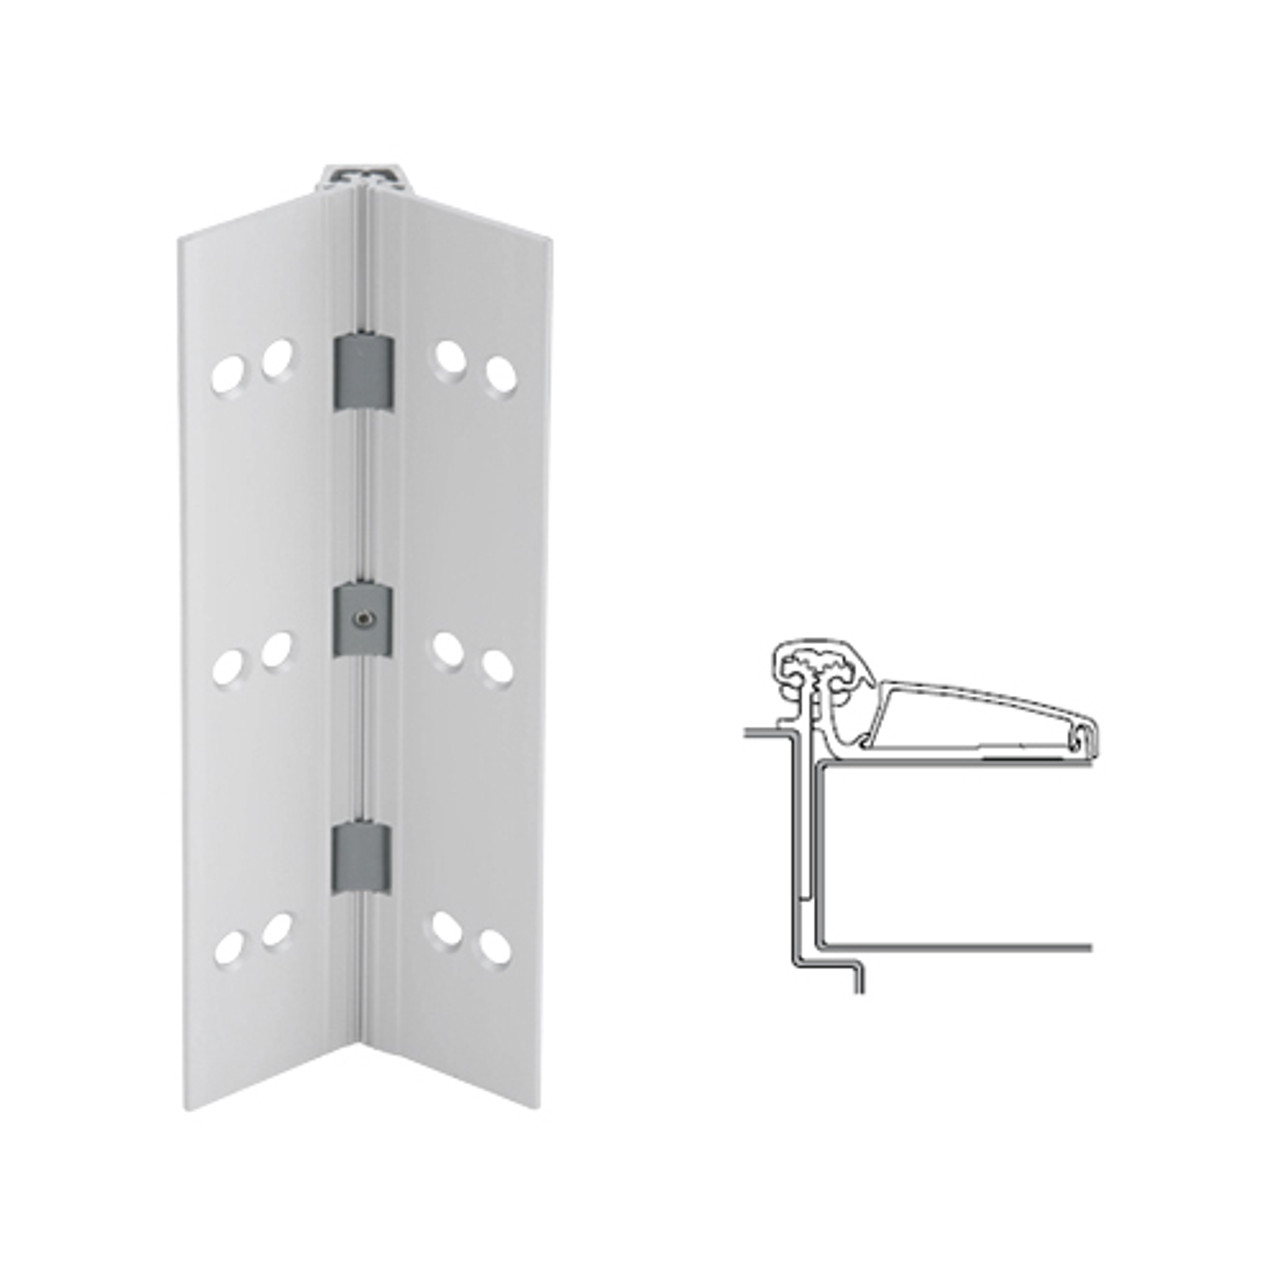 045XY-US28-85-SECWDWD IVES Adjustable Half Surface Continuous Geared Hinges with Security Screws - Hex Pin Drive in Satin Aluminum